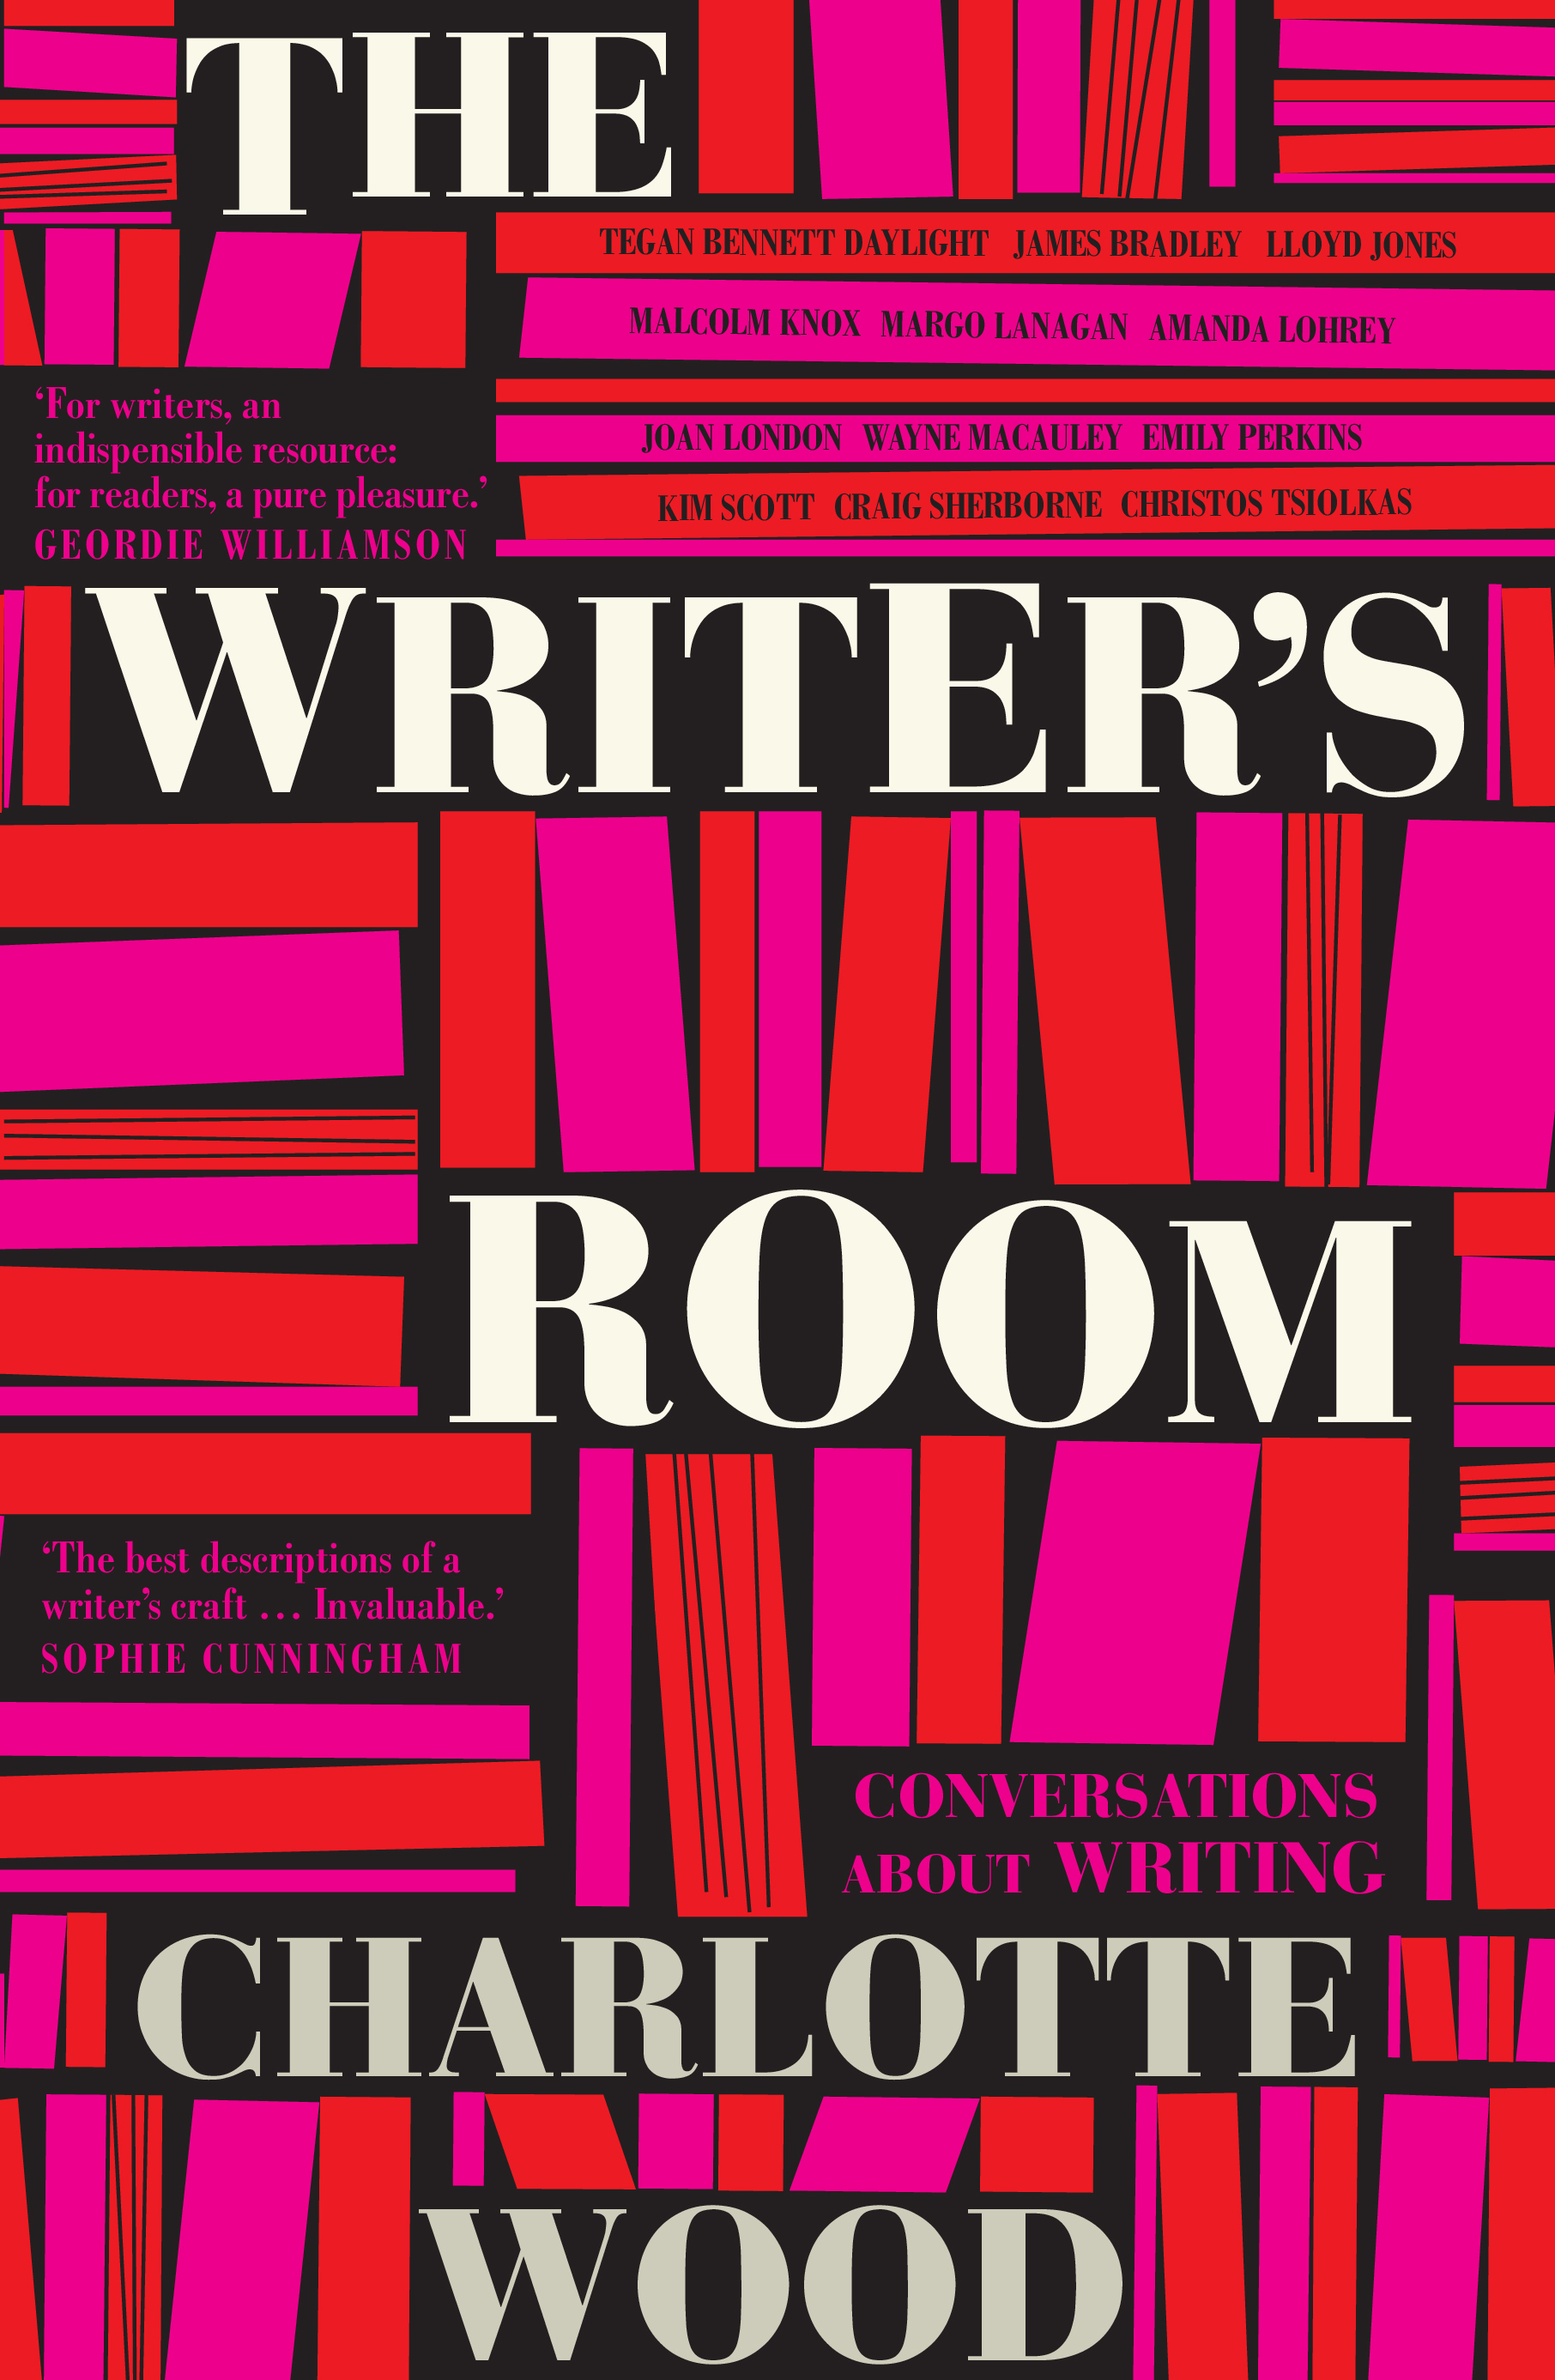 The Writer's Room by Charlotte Wood, ISBN: 9781760293345